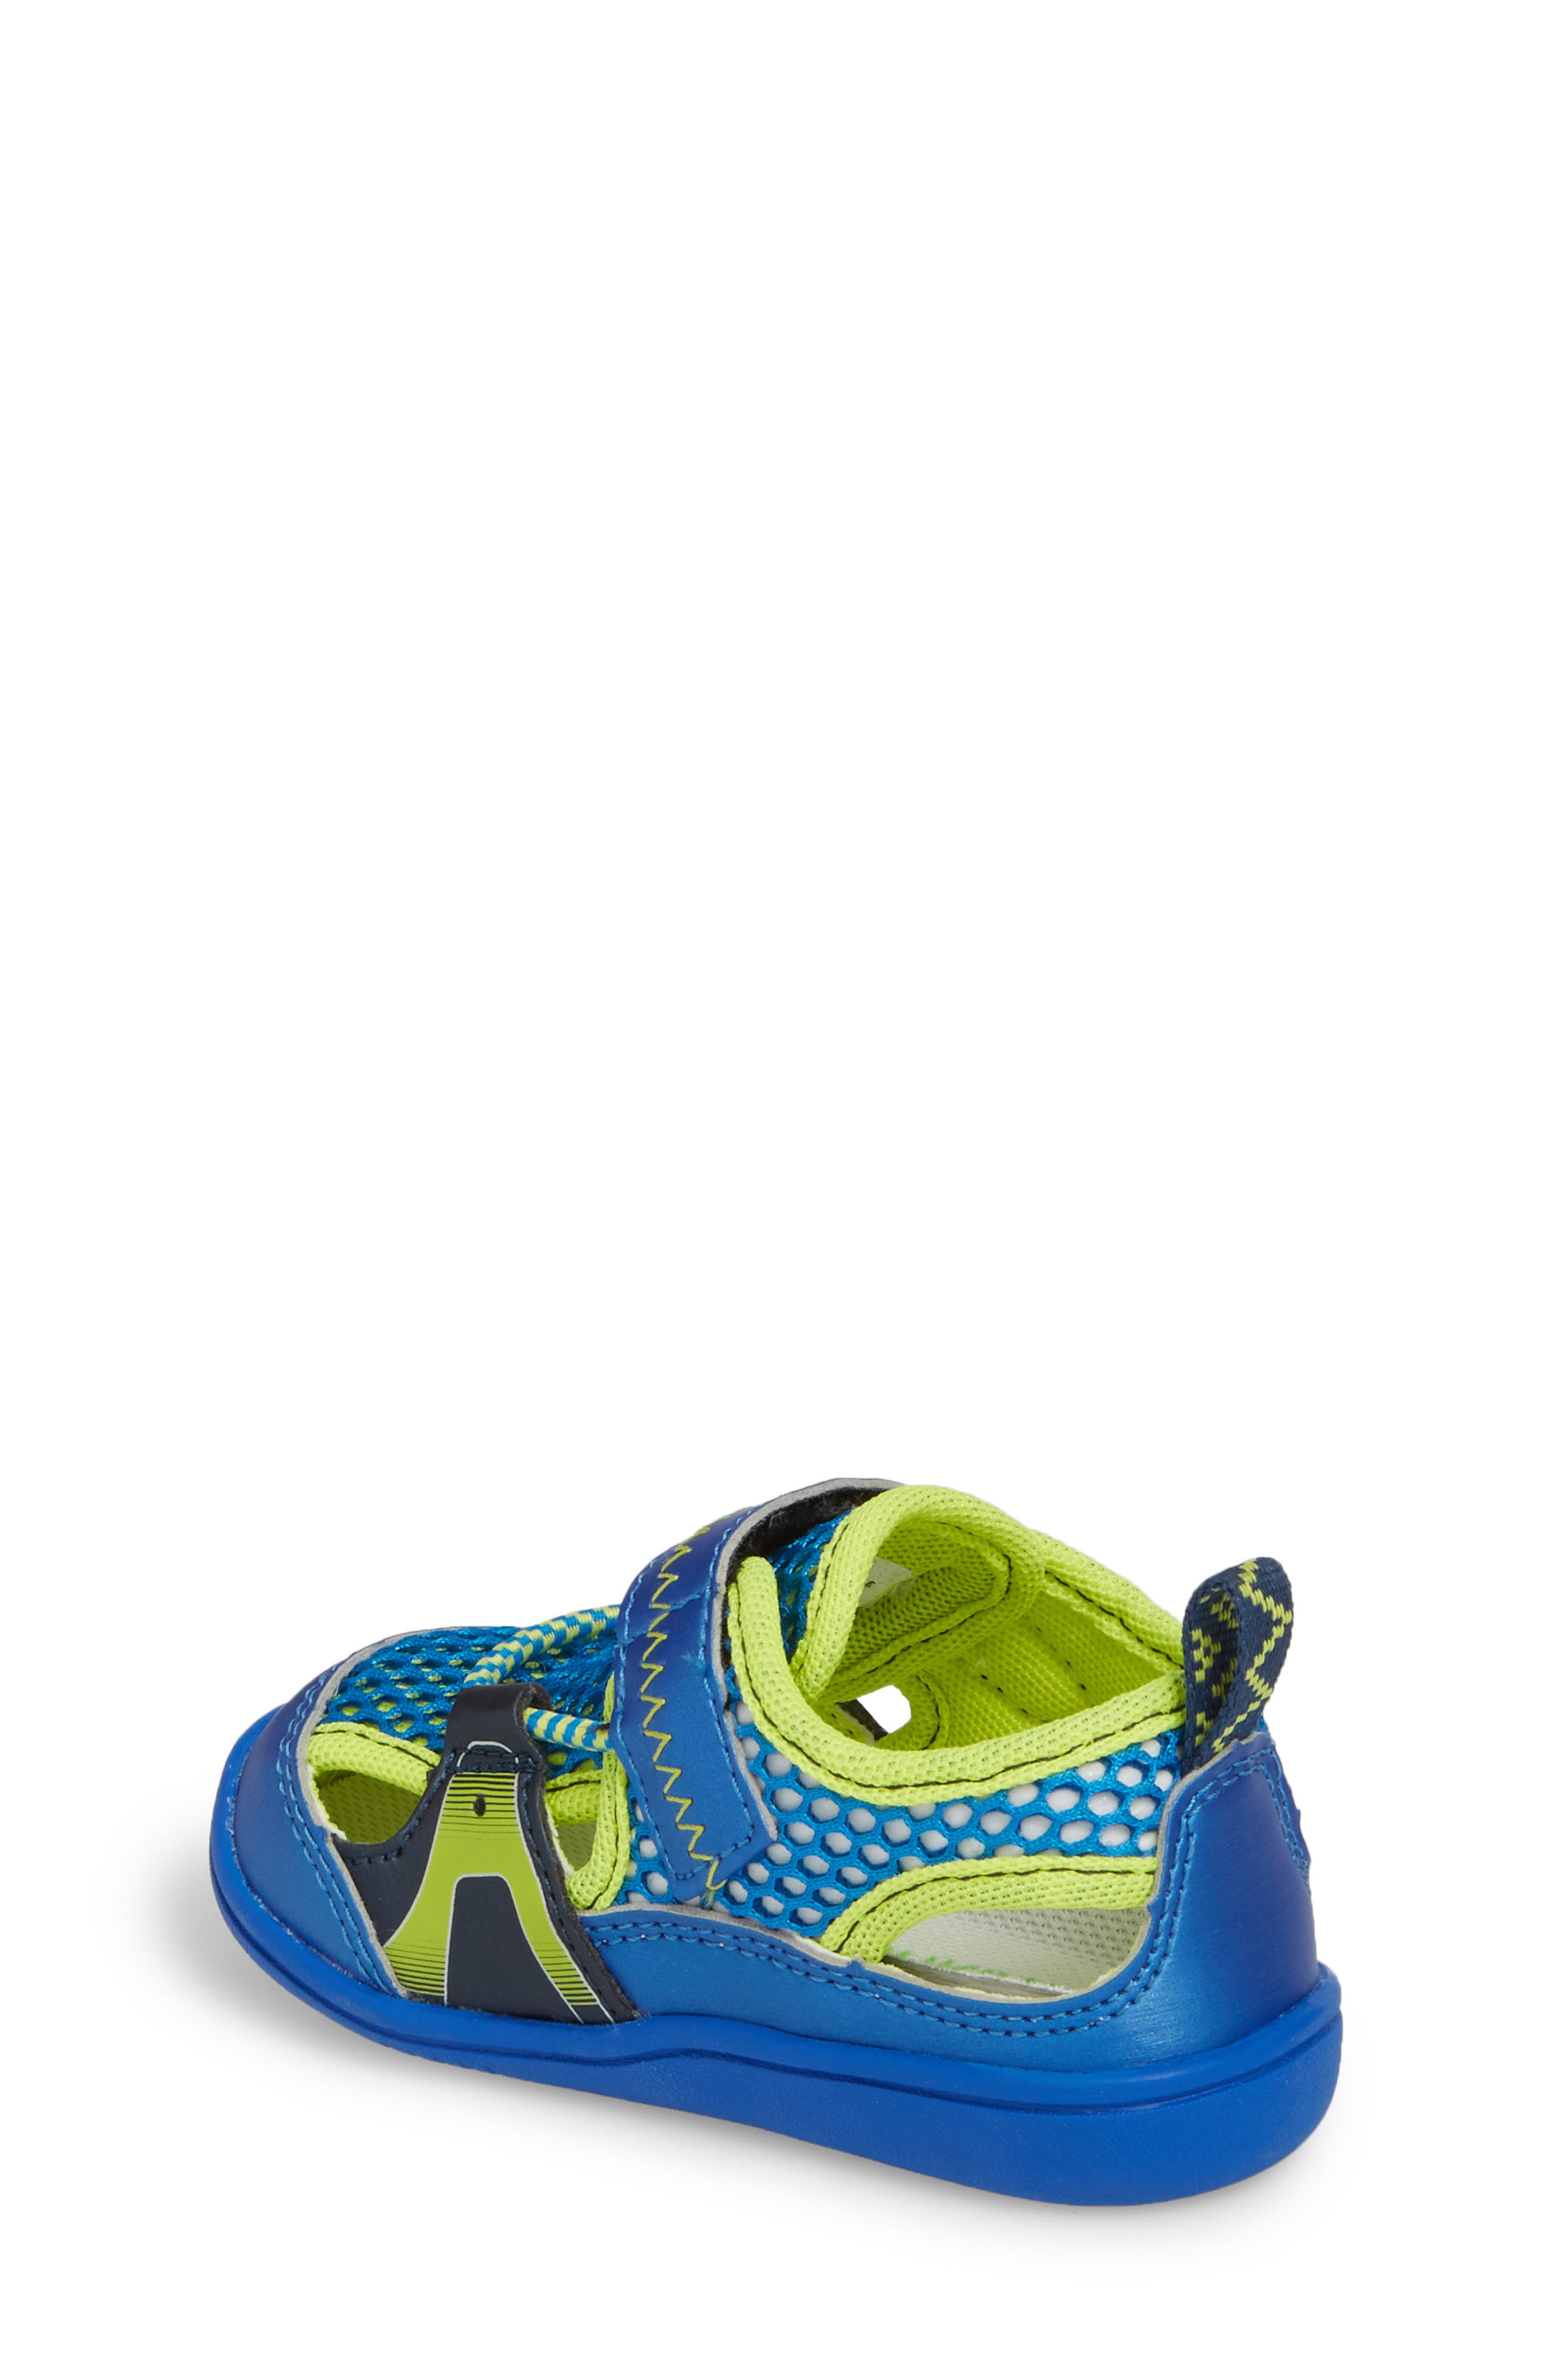 Ibiza Washable Sandal,                             Alternate thumbnail 2, color,                             ROYAL/ LIME